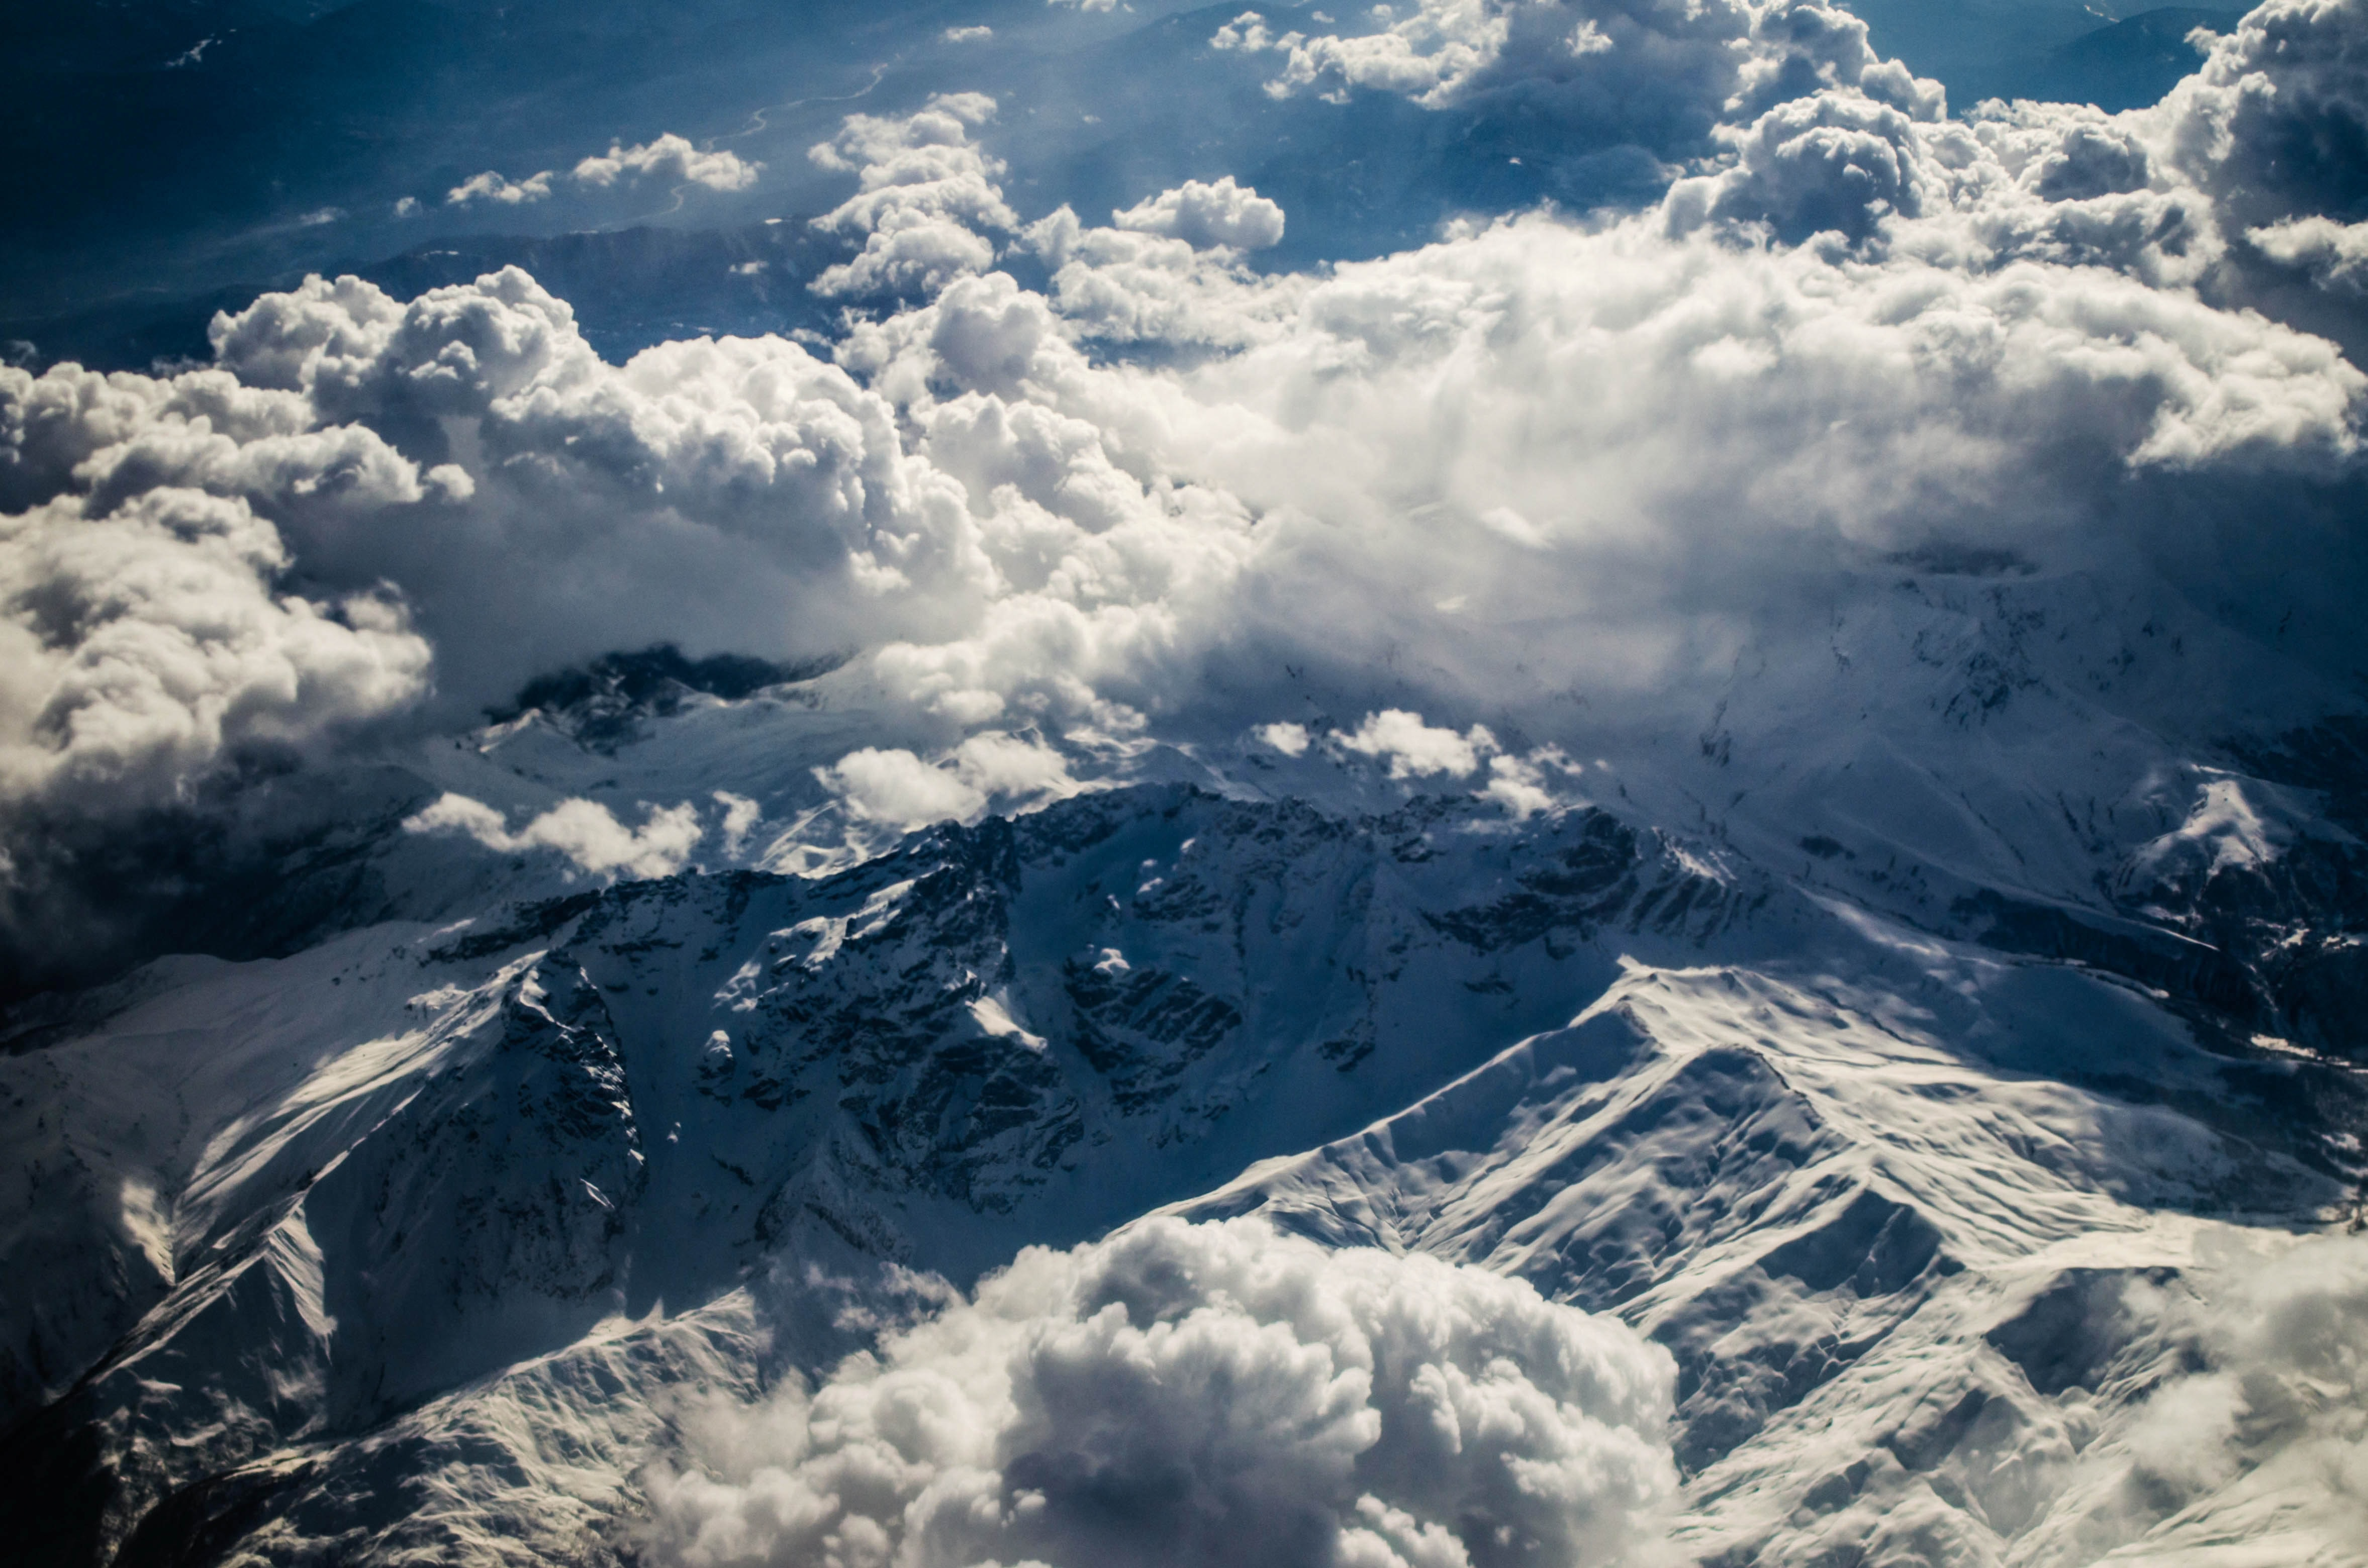 bird's eye view of mountain under clouds